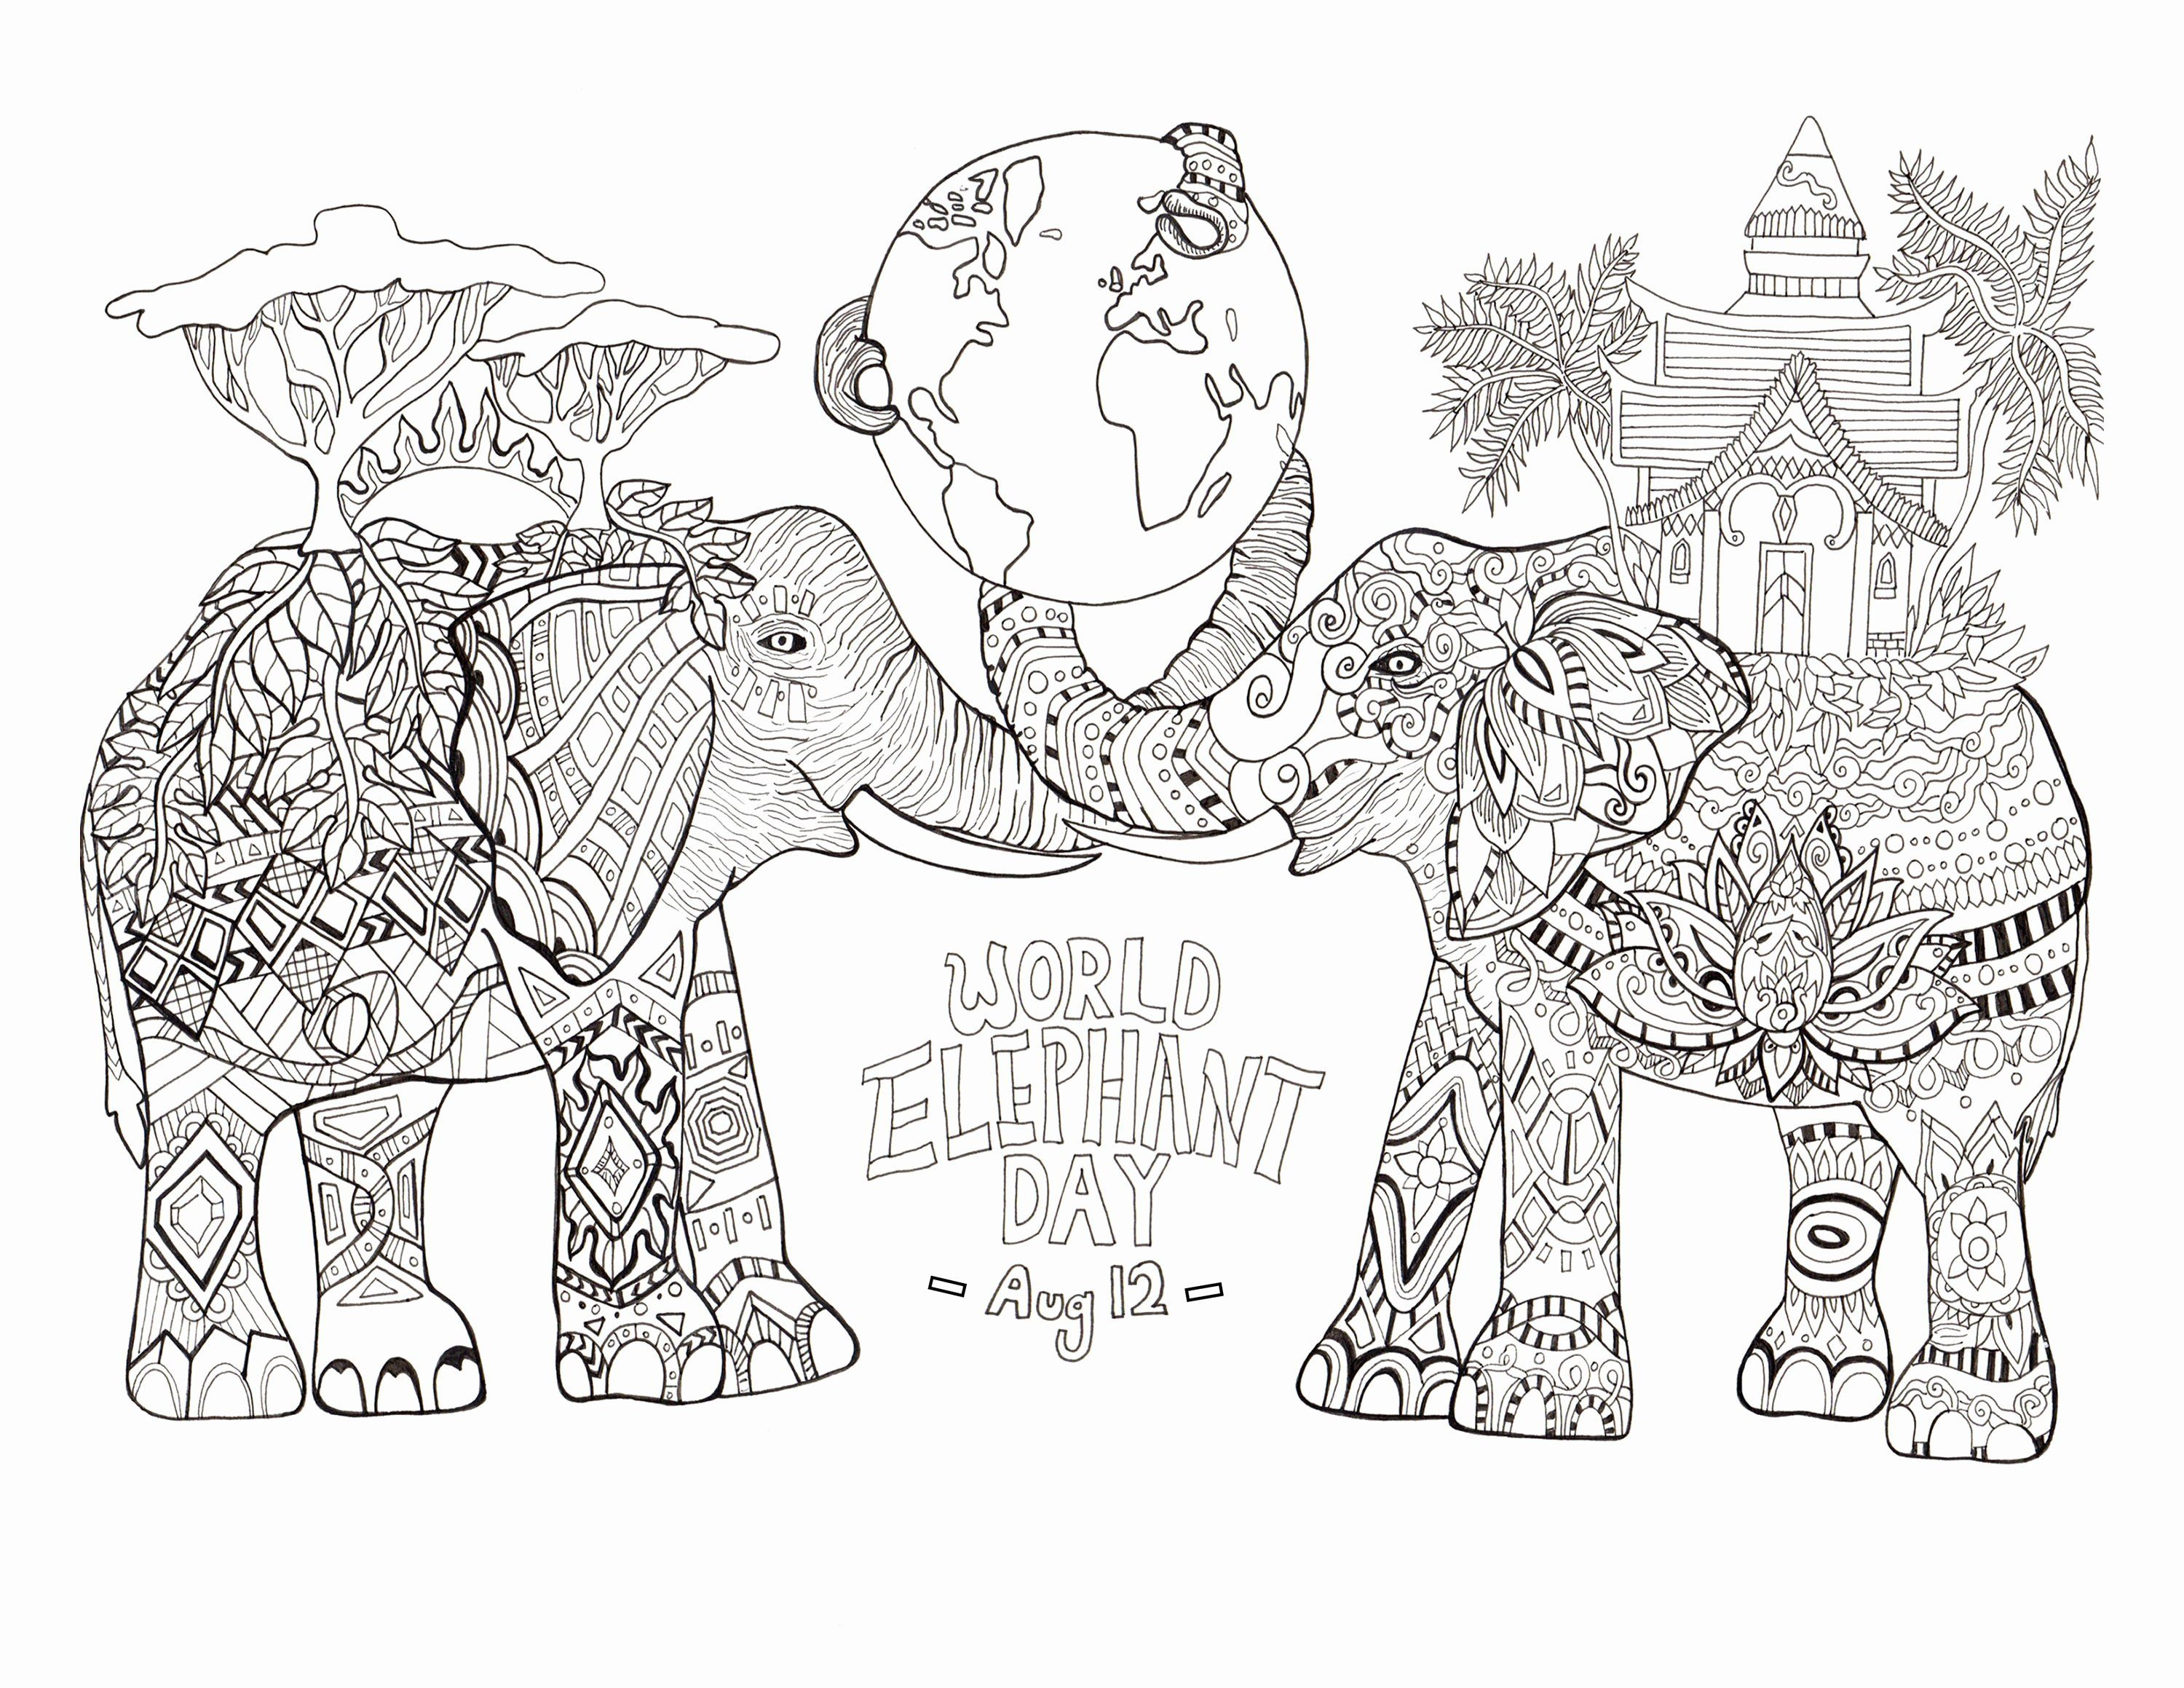 Animal Coloring Pages For Adults Pdf Unique Fresh World Elephant Day Elephants Coloring Pag Elephant Coloring Page Bear Coloring Pages Superhero Coloring Pages